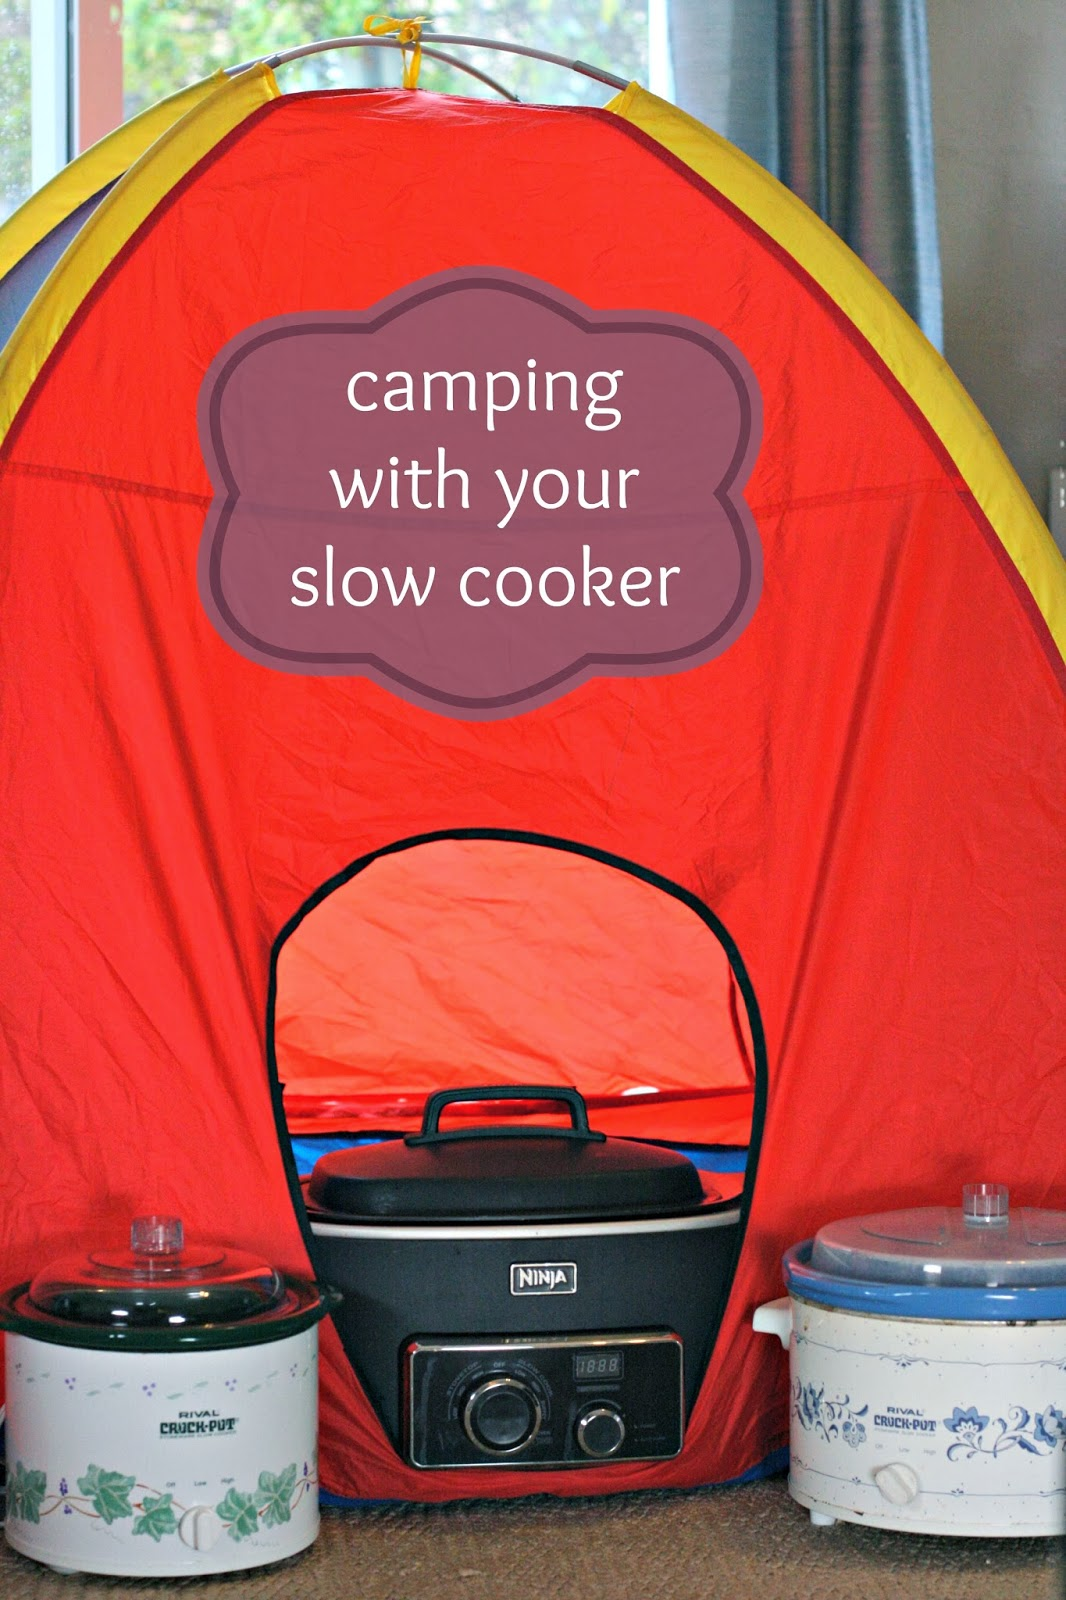 Yes, you should totally take your slow cooker on your next camping trip!! Article includes camping food ideas, too! This is a must-pin to explore later.